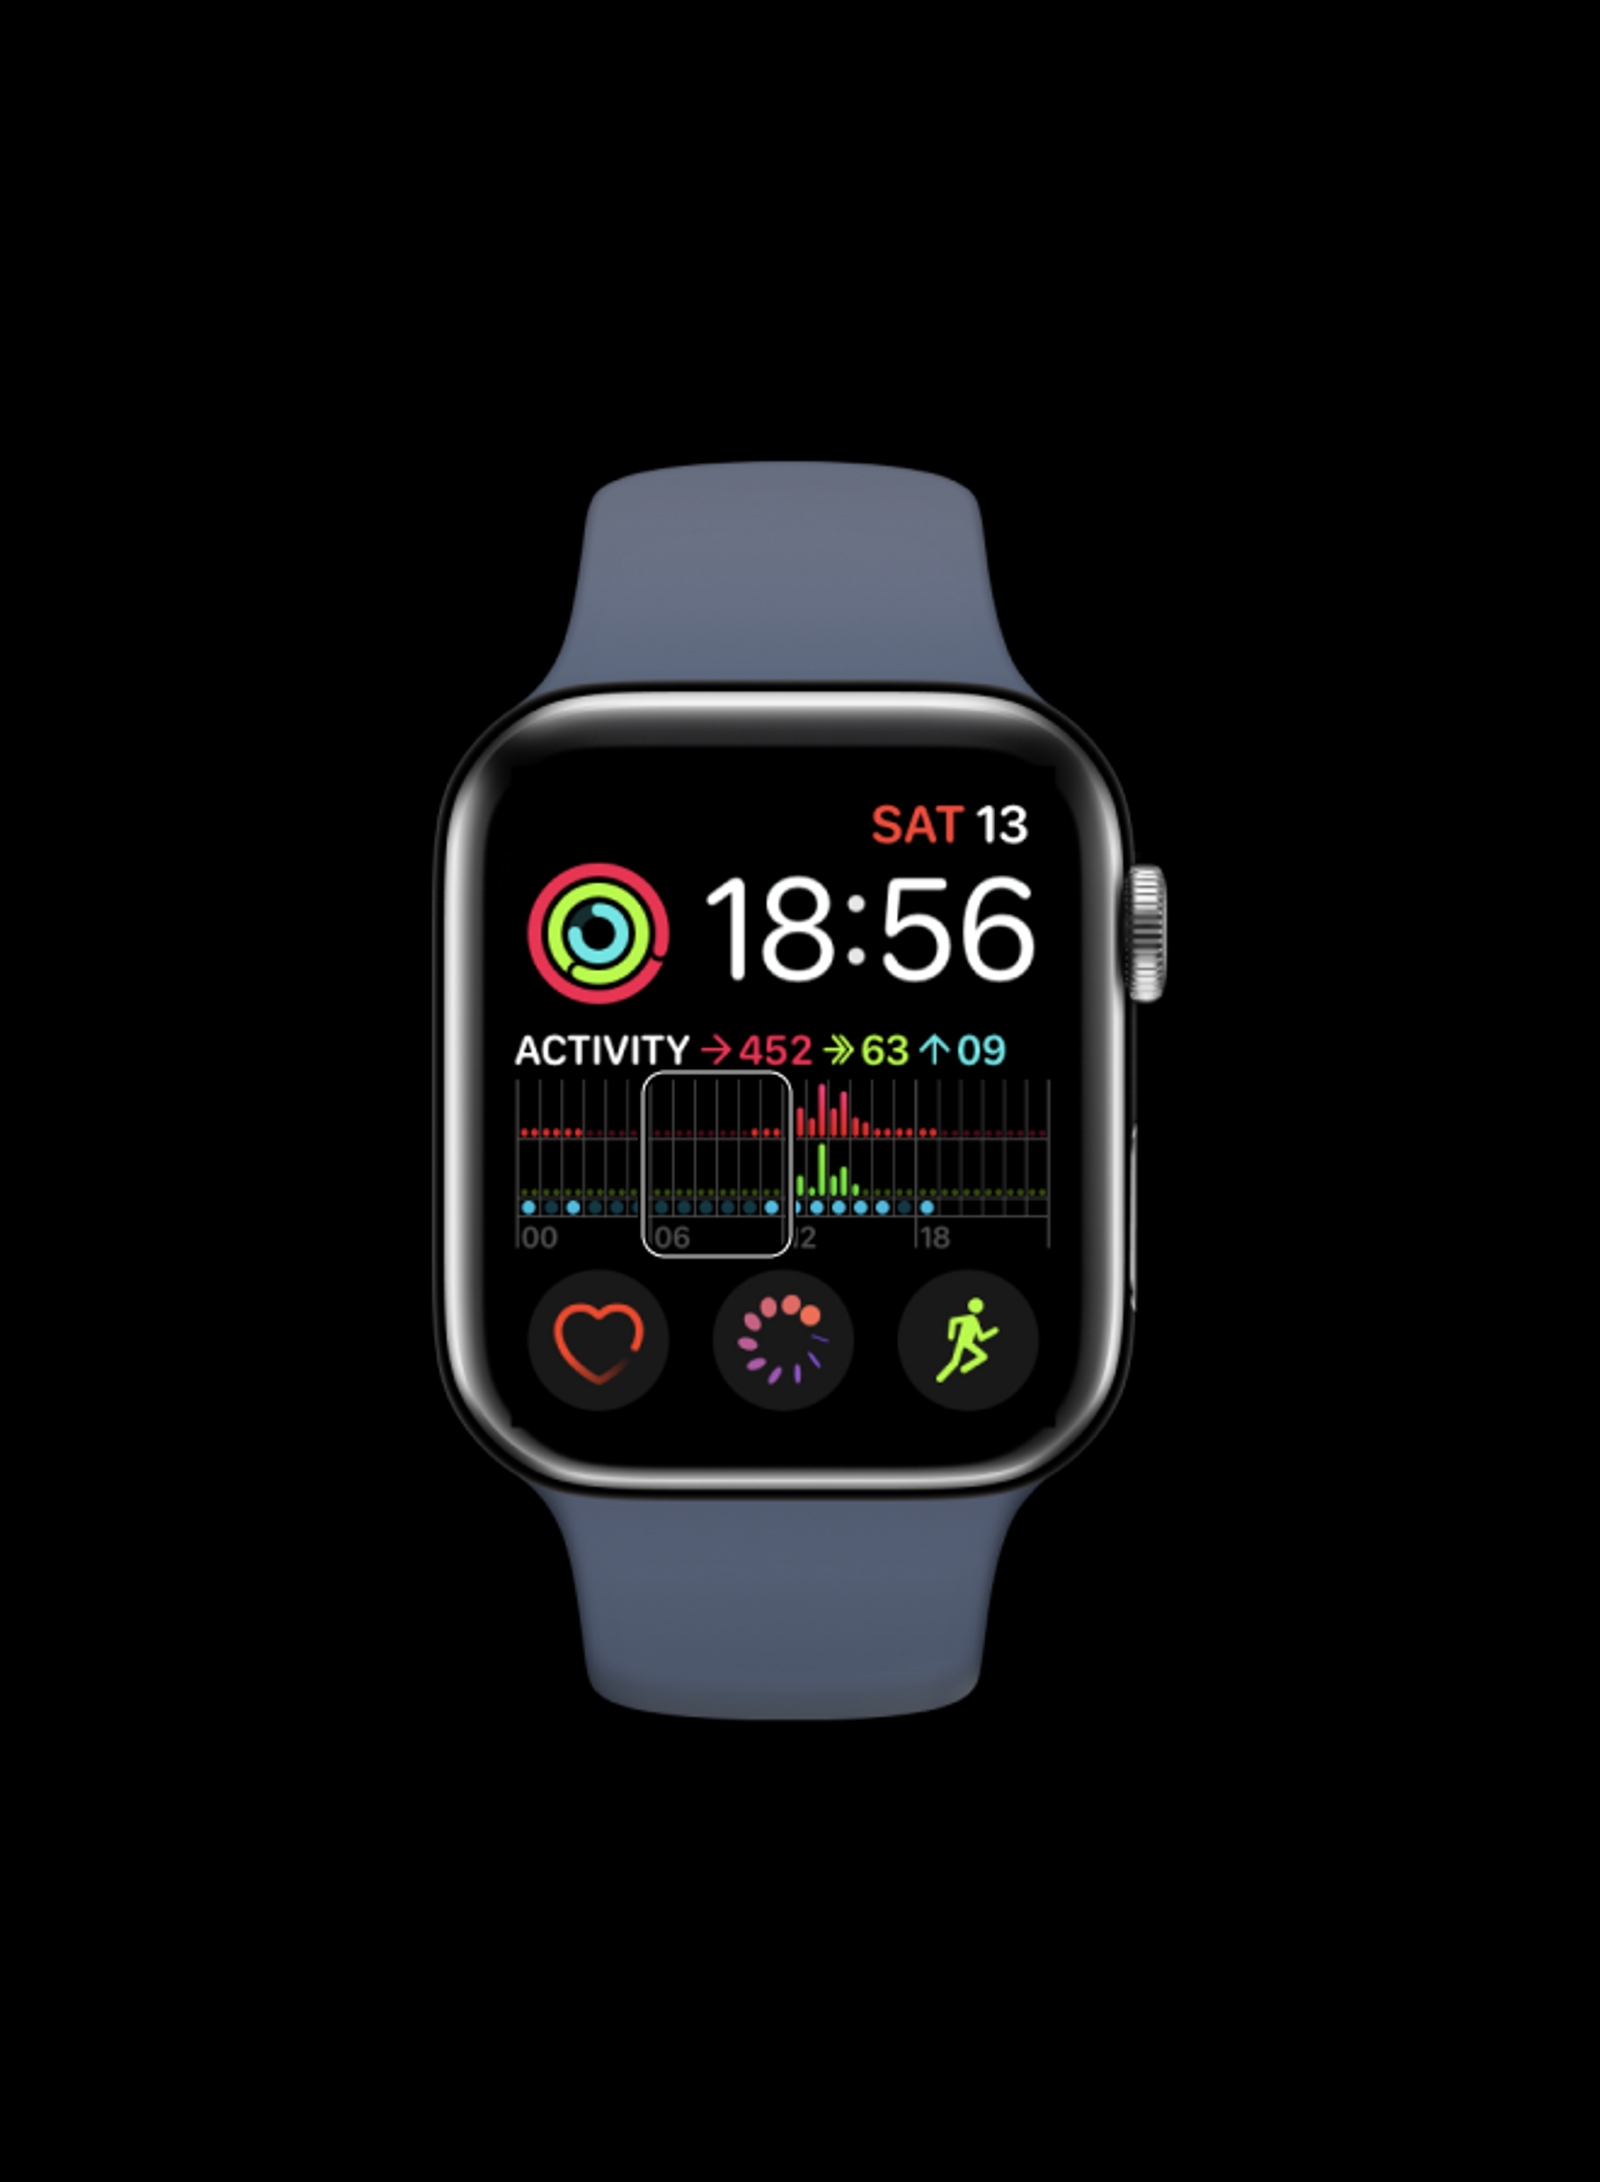 the same apple watch face inside an apple watch, one six hour block is selected with voiceover